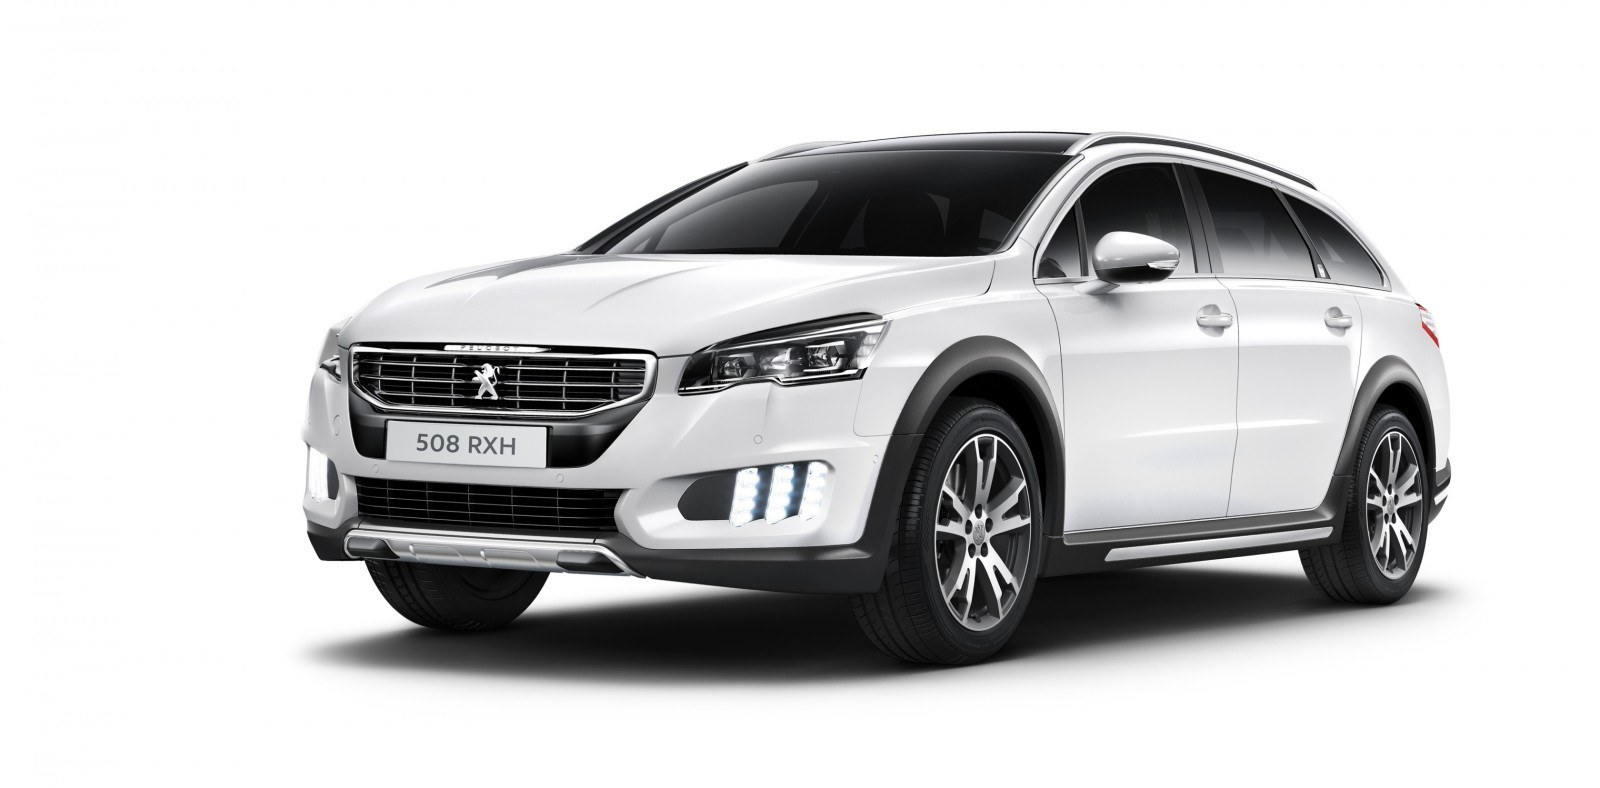 2015 Peugeot 508 Facelifted With New LED DRLs, Box-Design Beams and Tweaked Cabin Tech 12